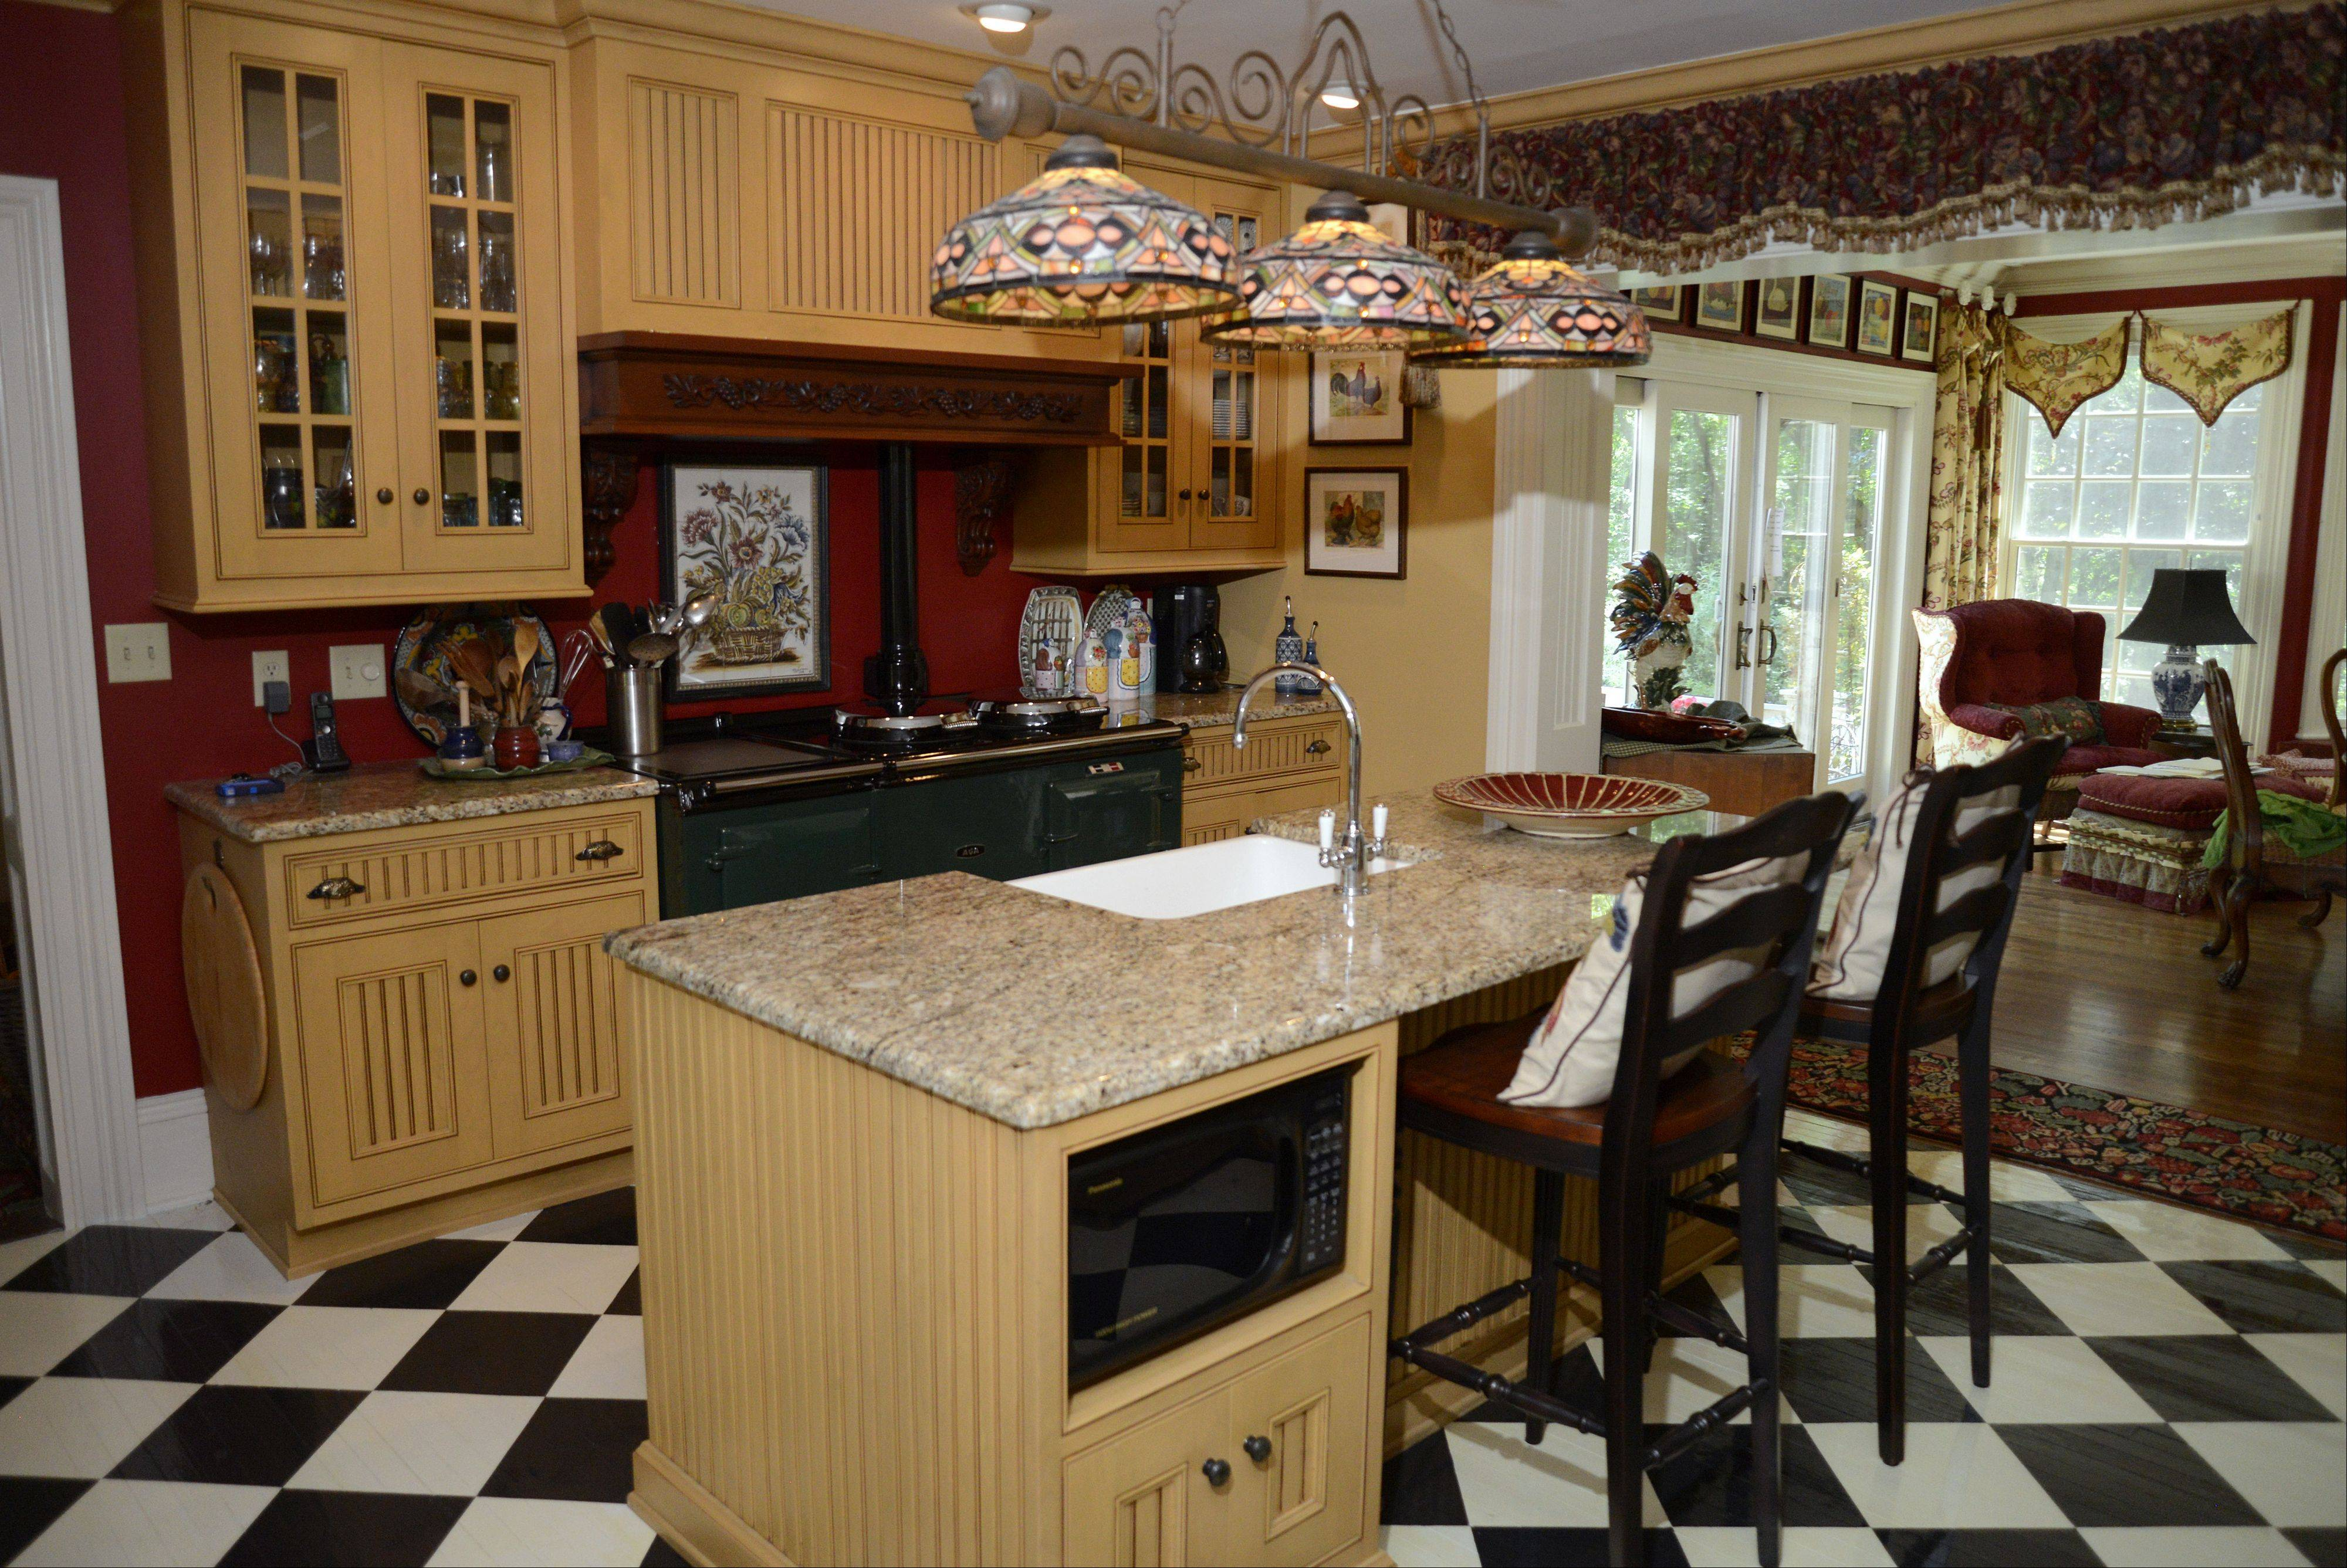 The kitchen of the historic Curtis house in Geneva features granite countertops and an AGA cooker.